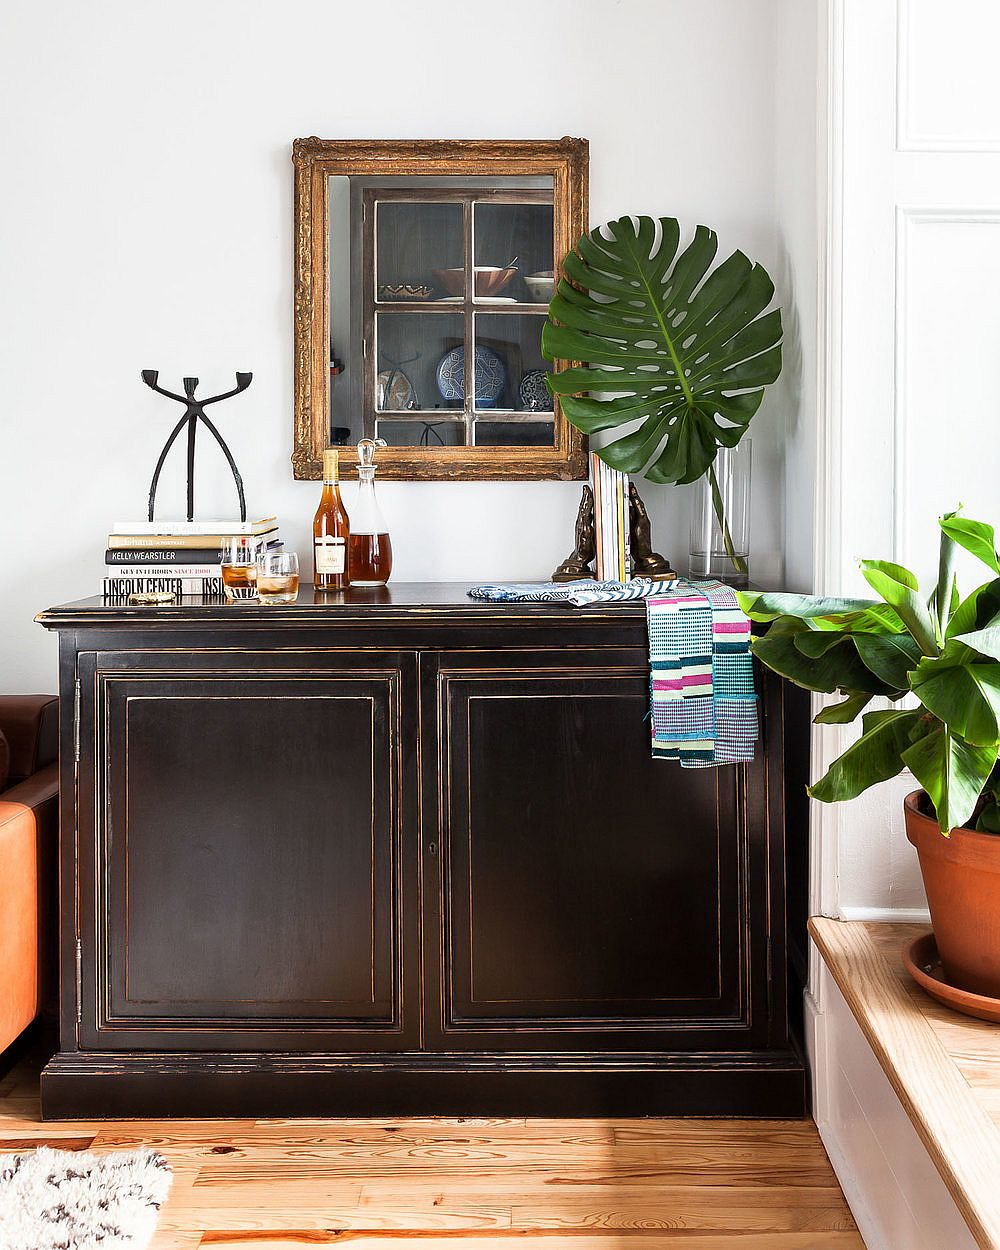 Decorating the large wooden credenza in the living room with a touch of greenery